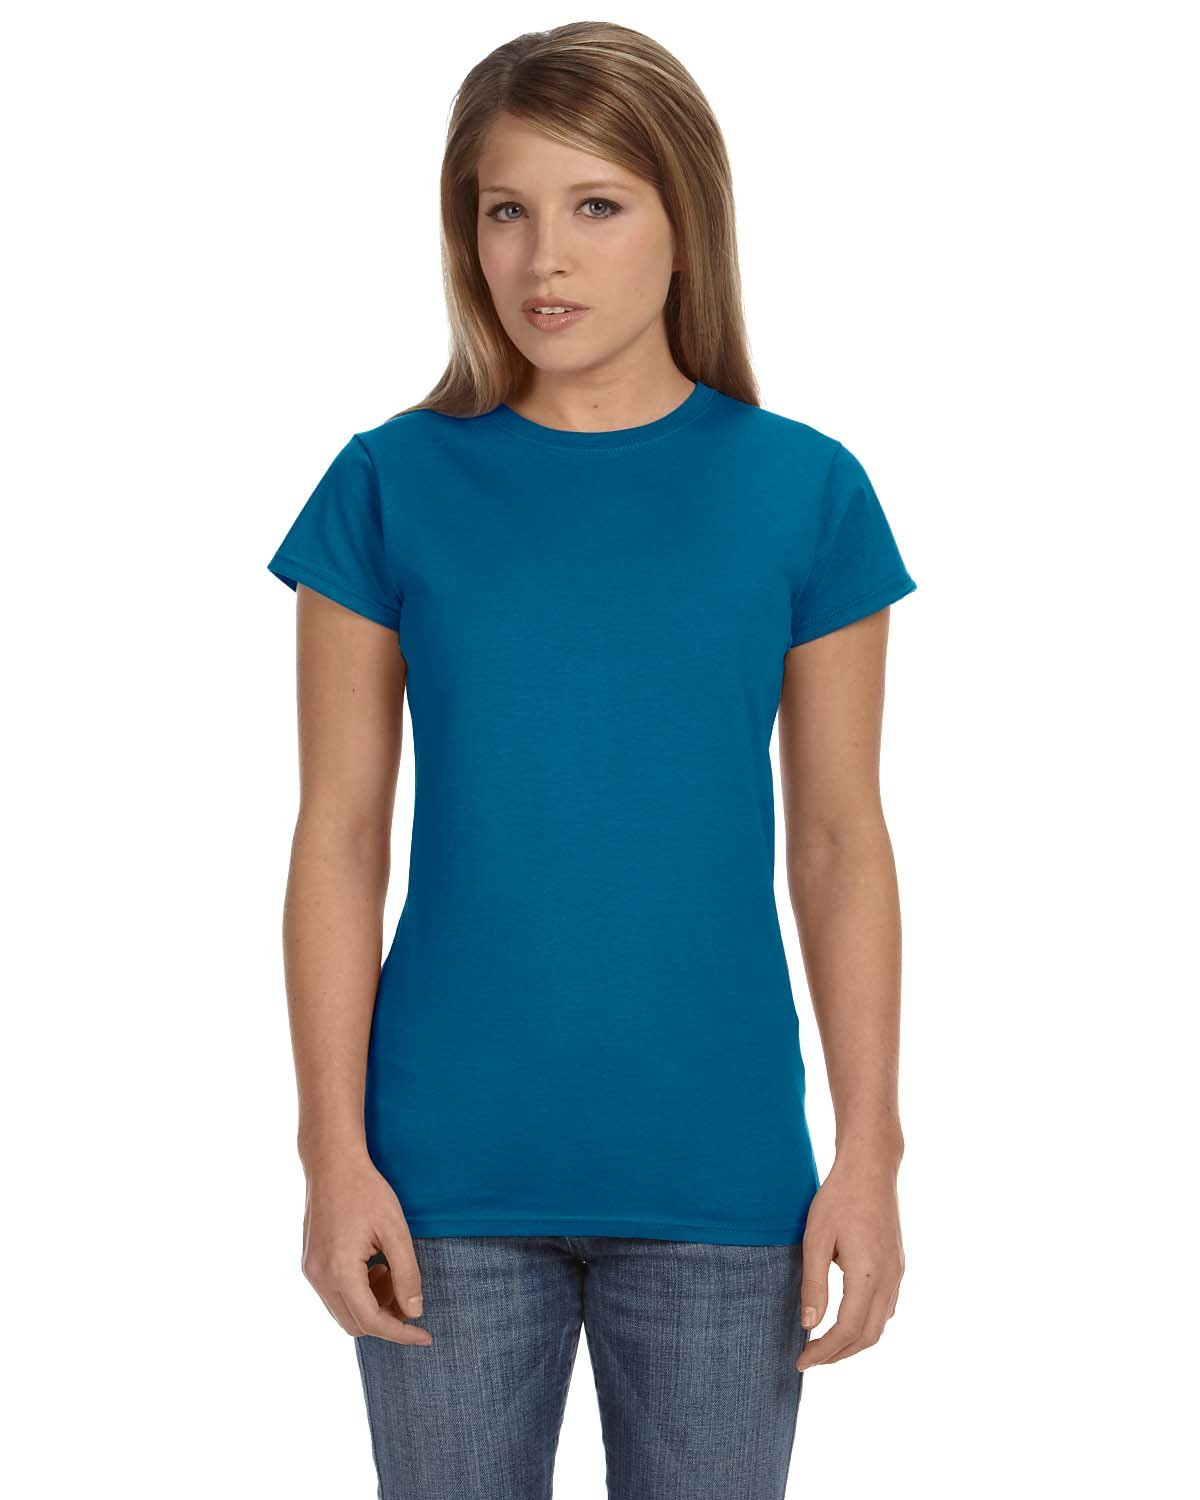 Gildan Ladies' Softstyle® 4.5 oz Fitted T-Shirt ANTQUE SAPPHIRE